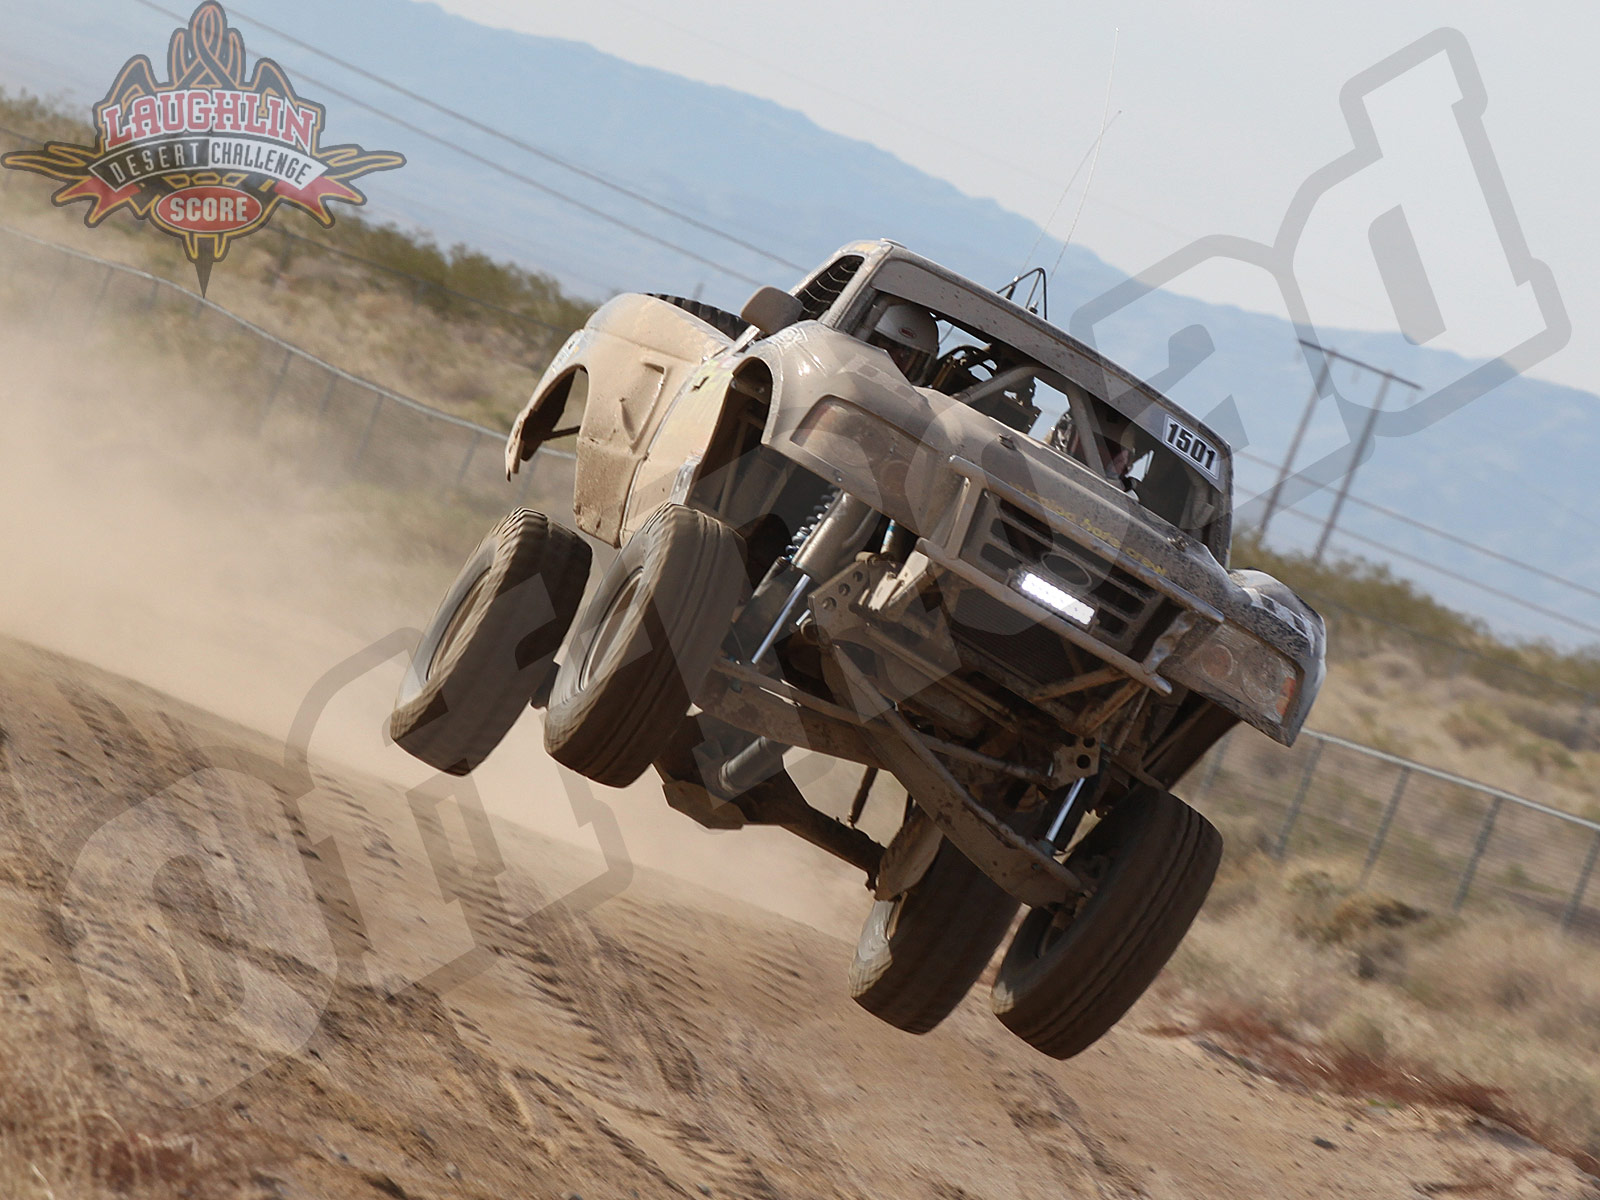 012011or 6579+2011 score laughlin desert challenge+truck classes